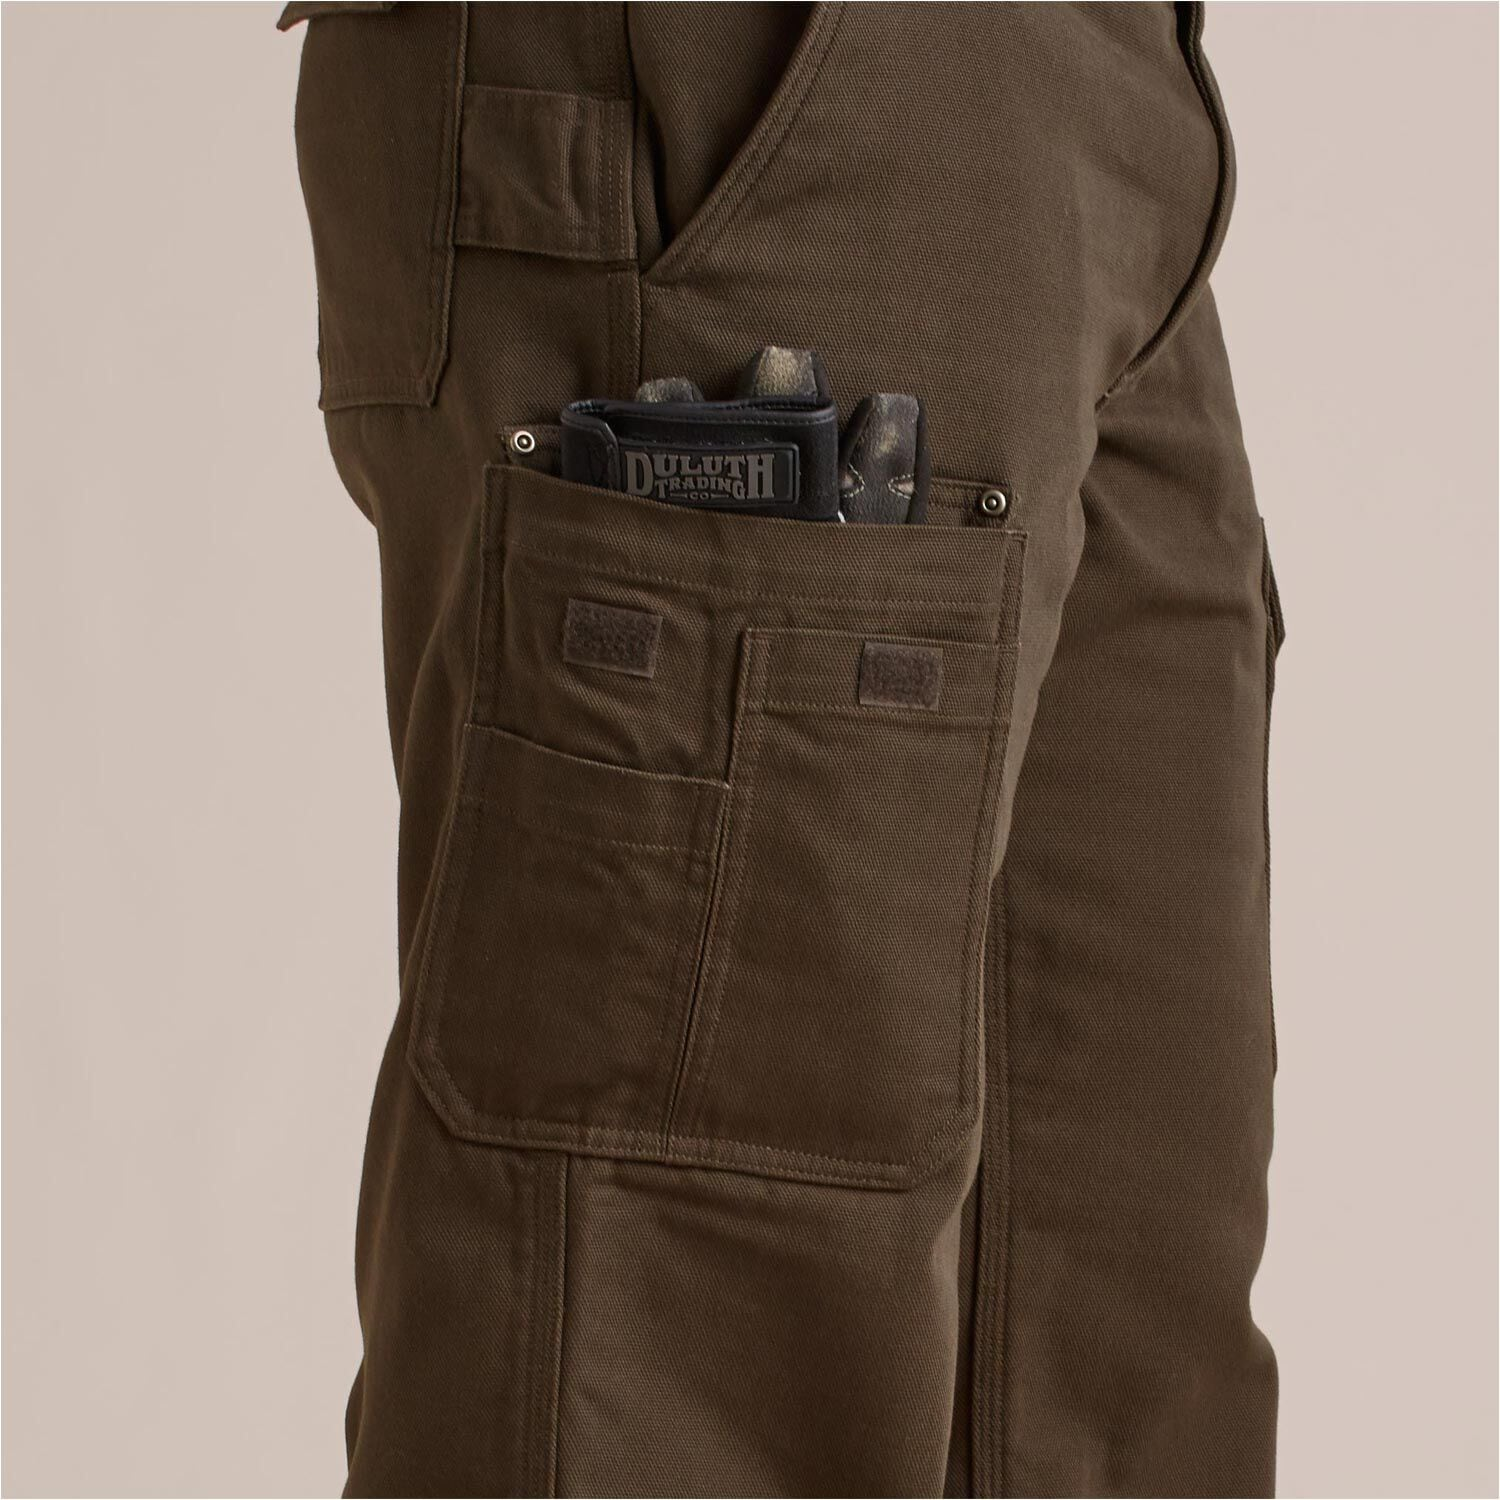 Men' Duluthflex Fire Hose Fleece-lined Relaxed Fit Cargo